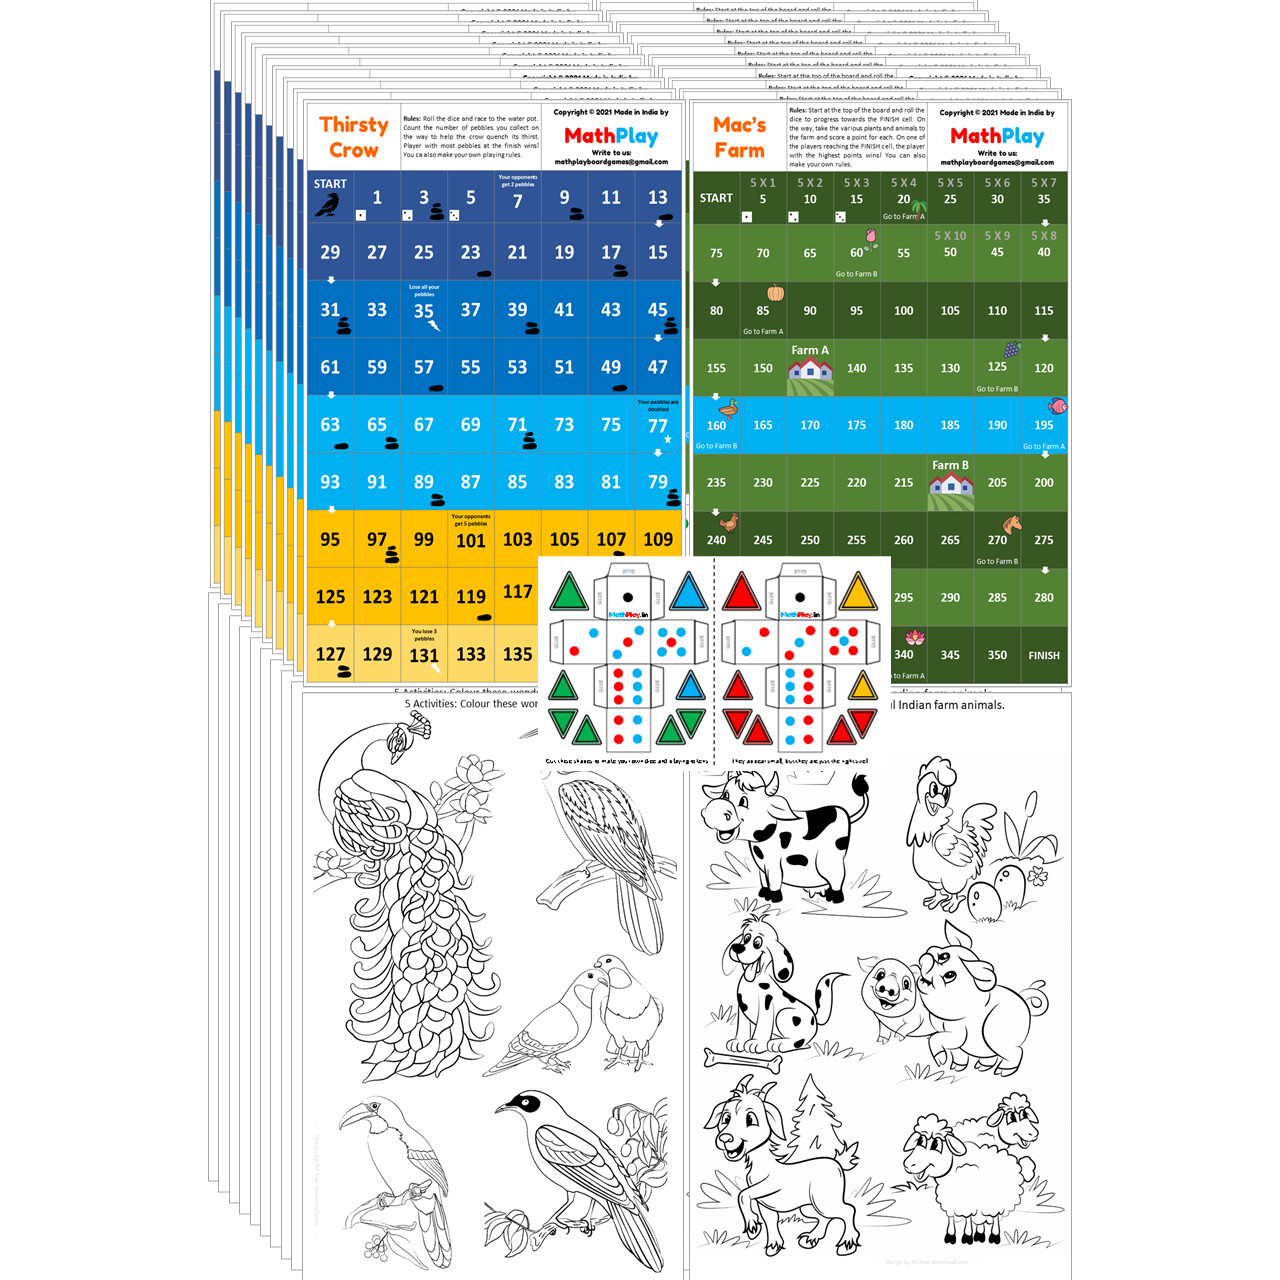 MathPlay Birthday Return Gift for Kids - Mac's Farm | Thirsty Crow (Pack of 10) - 15 in 1 Activities, Educational, Games, Painting, Dice Making Activities